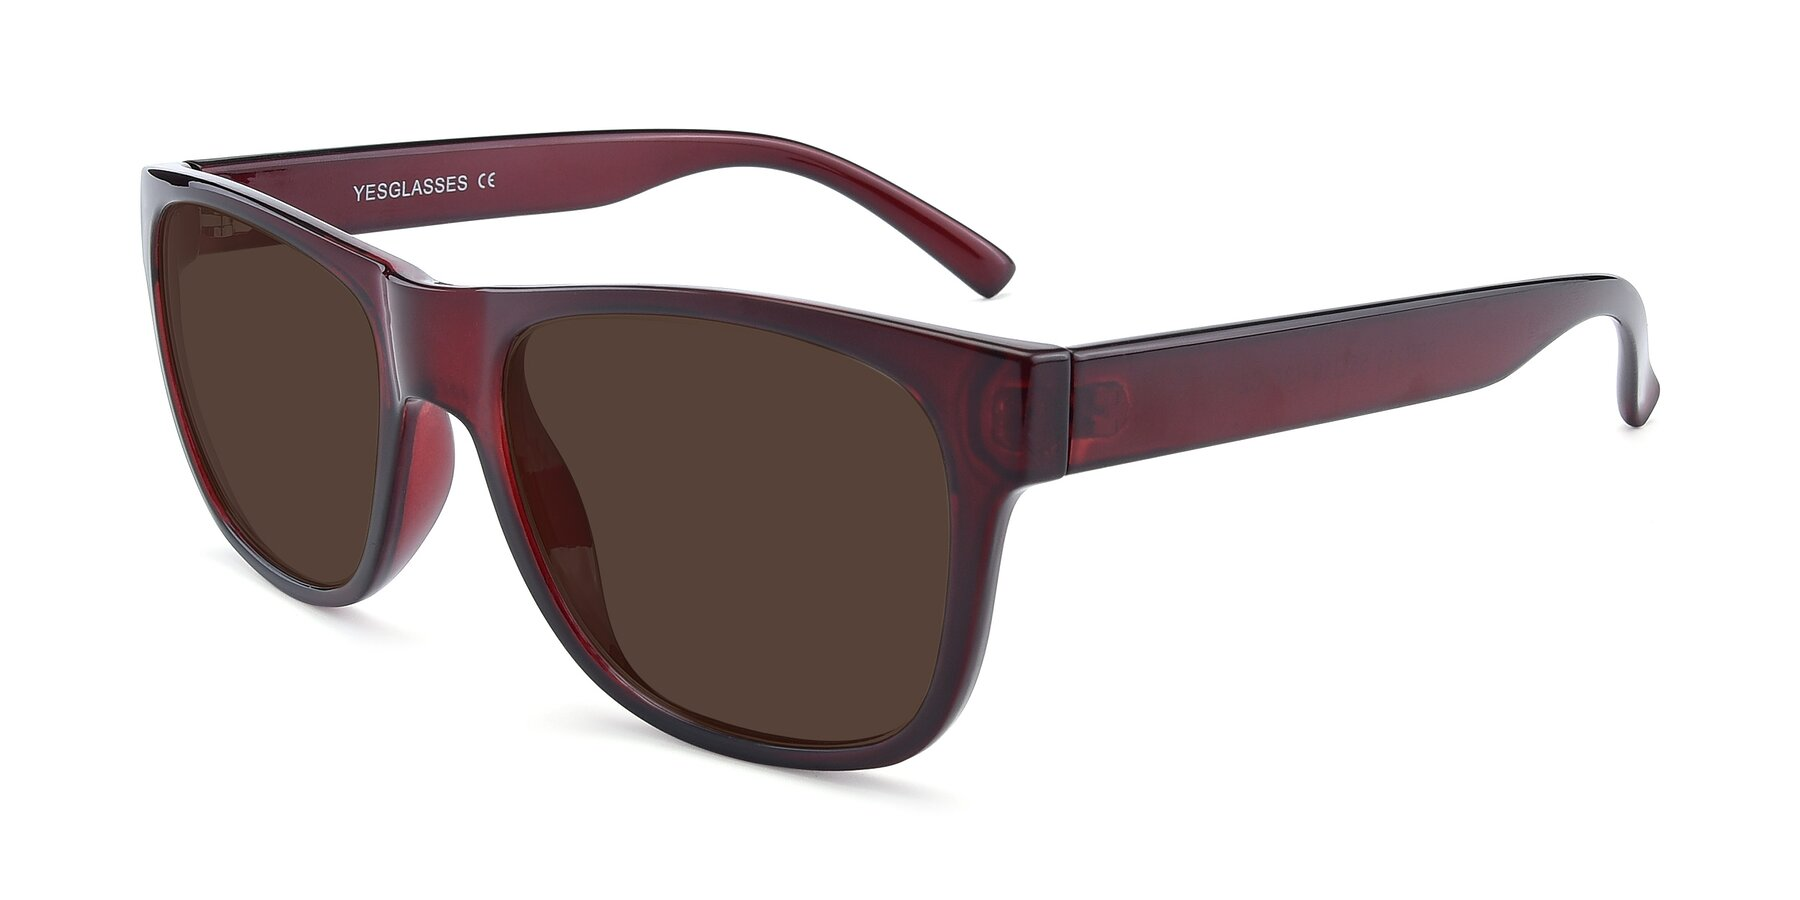 Angle of SSR213 in Wine with Brown Tinted Lenses